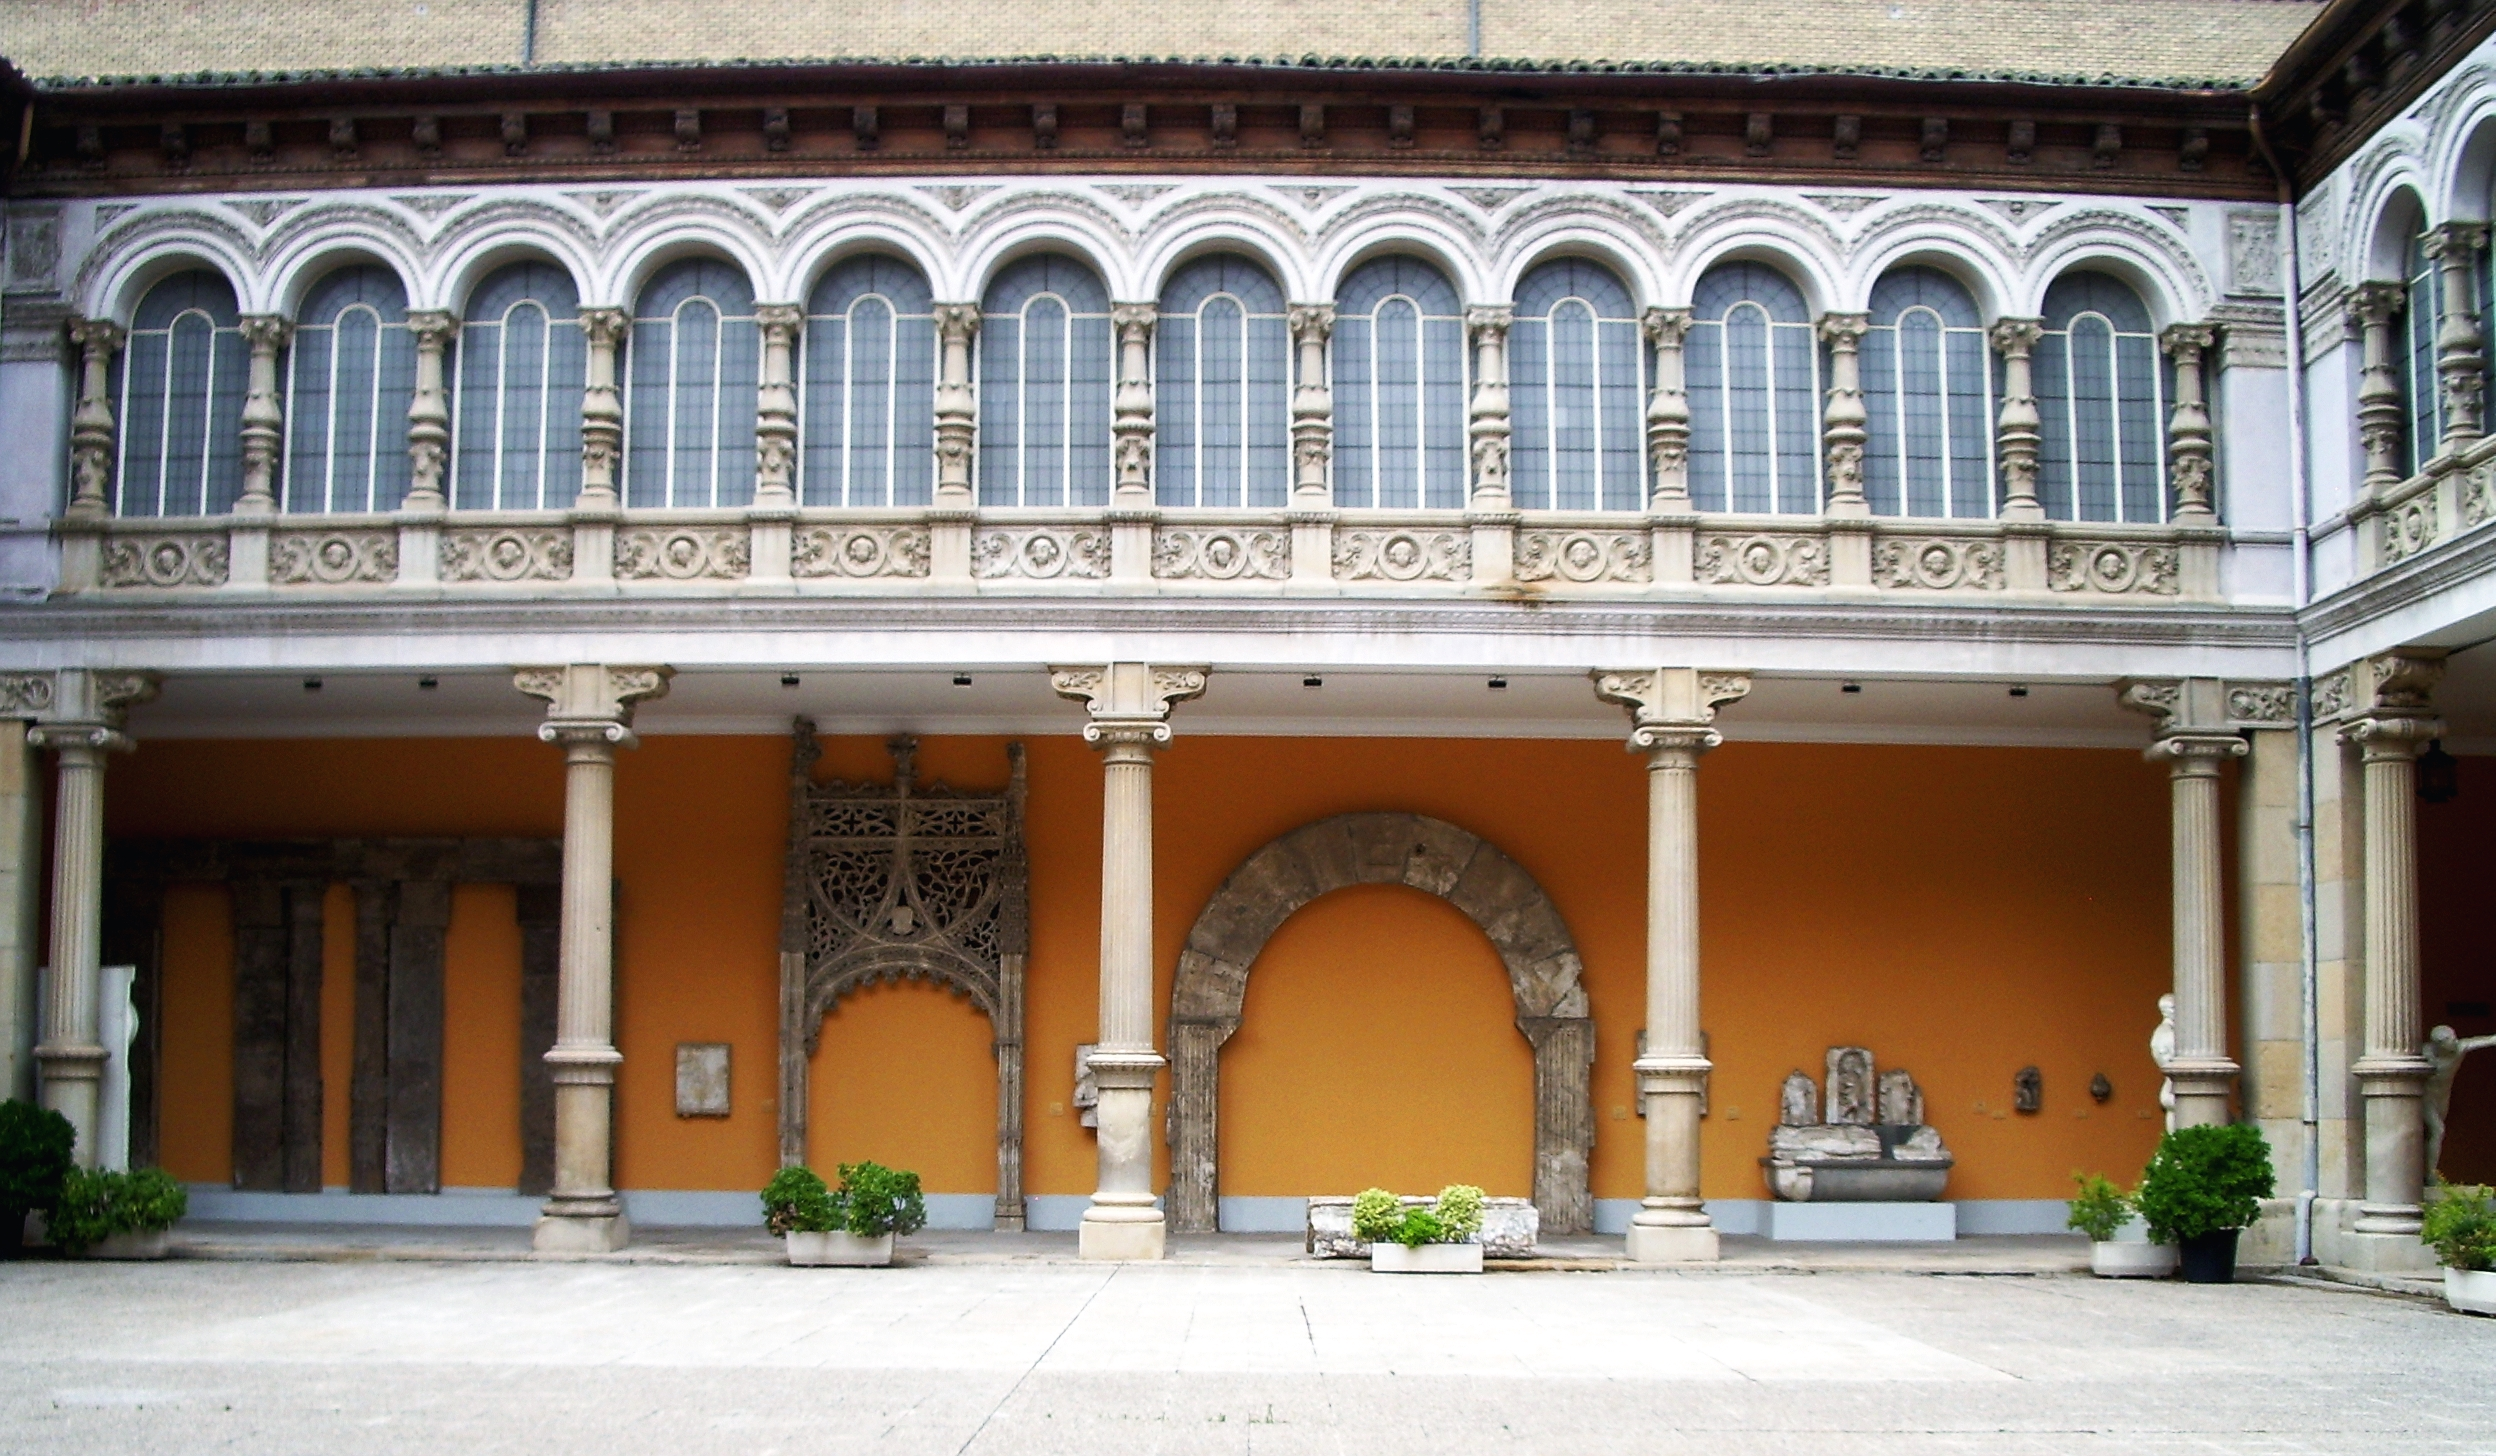 File:Patio del Museo de Zaragoza-2.jpg - Wikimedia Commons